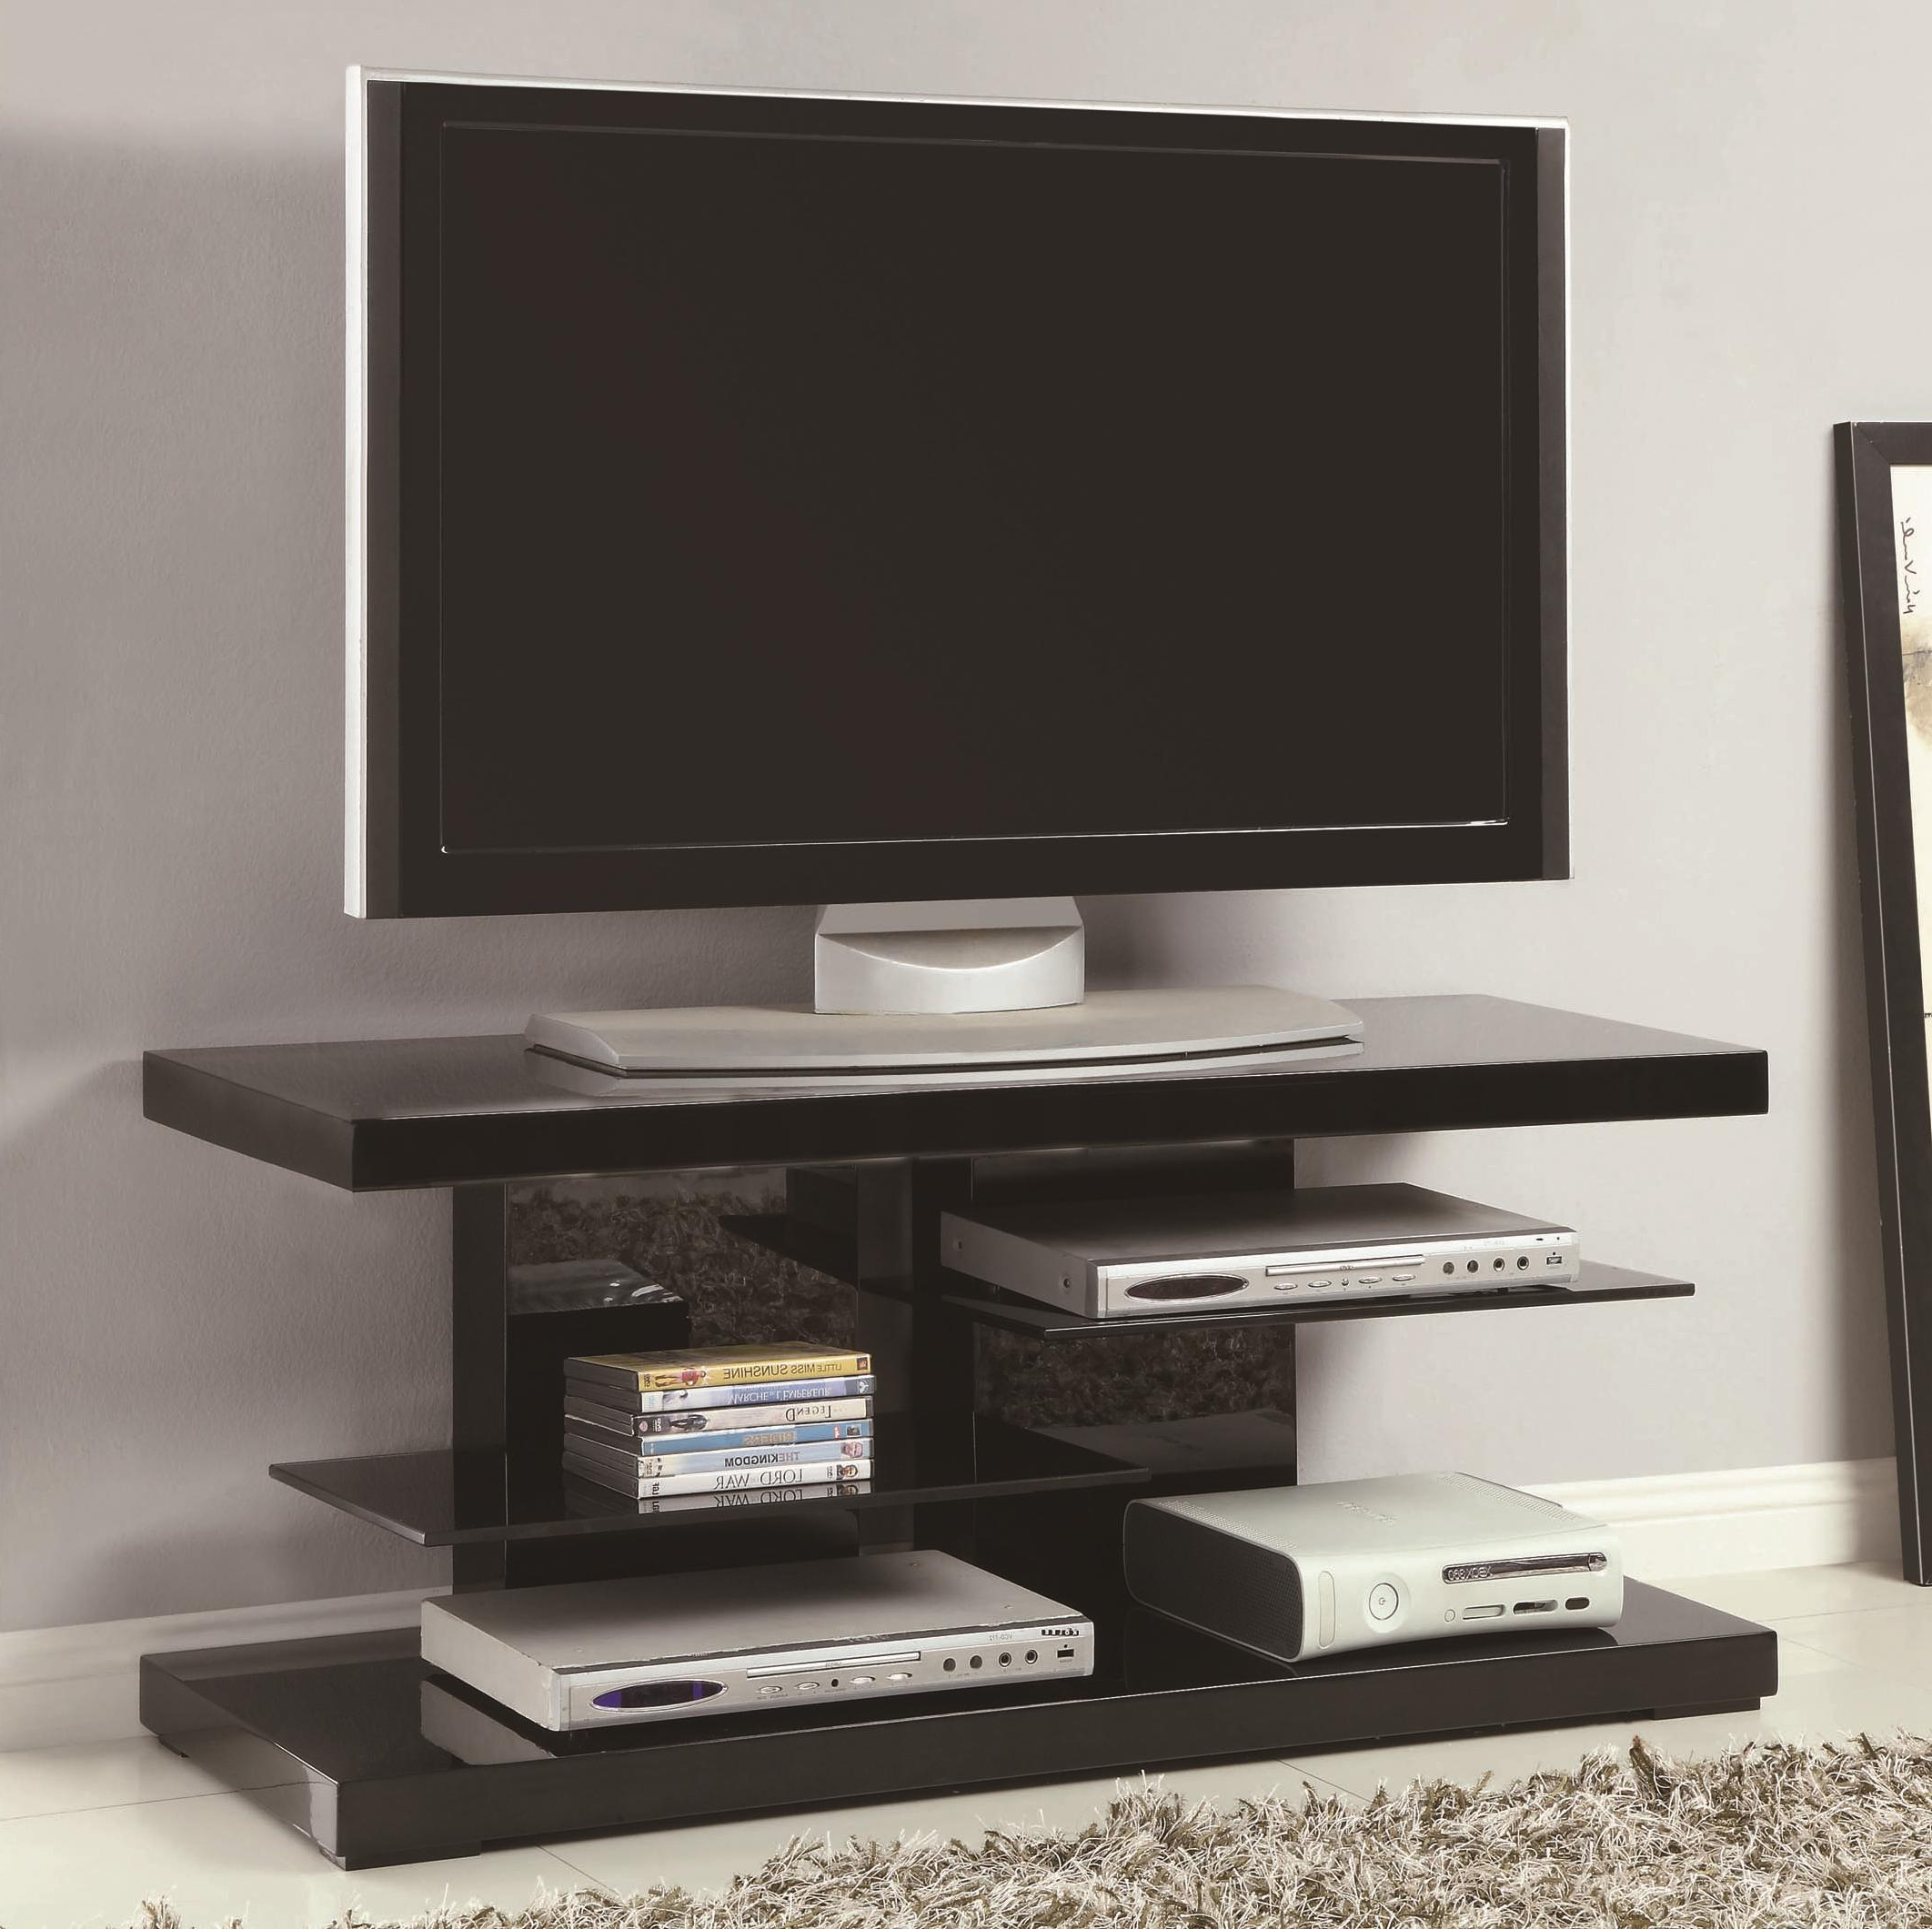 Coaster Tv Stands Modern Tv Stand With Alternating Glass Inside Contemporary Black Tv Stands Corner Glass Shelf (View 7 of 20)